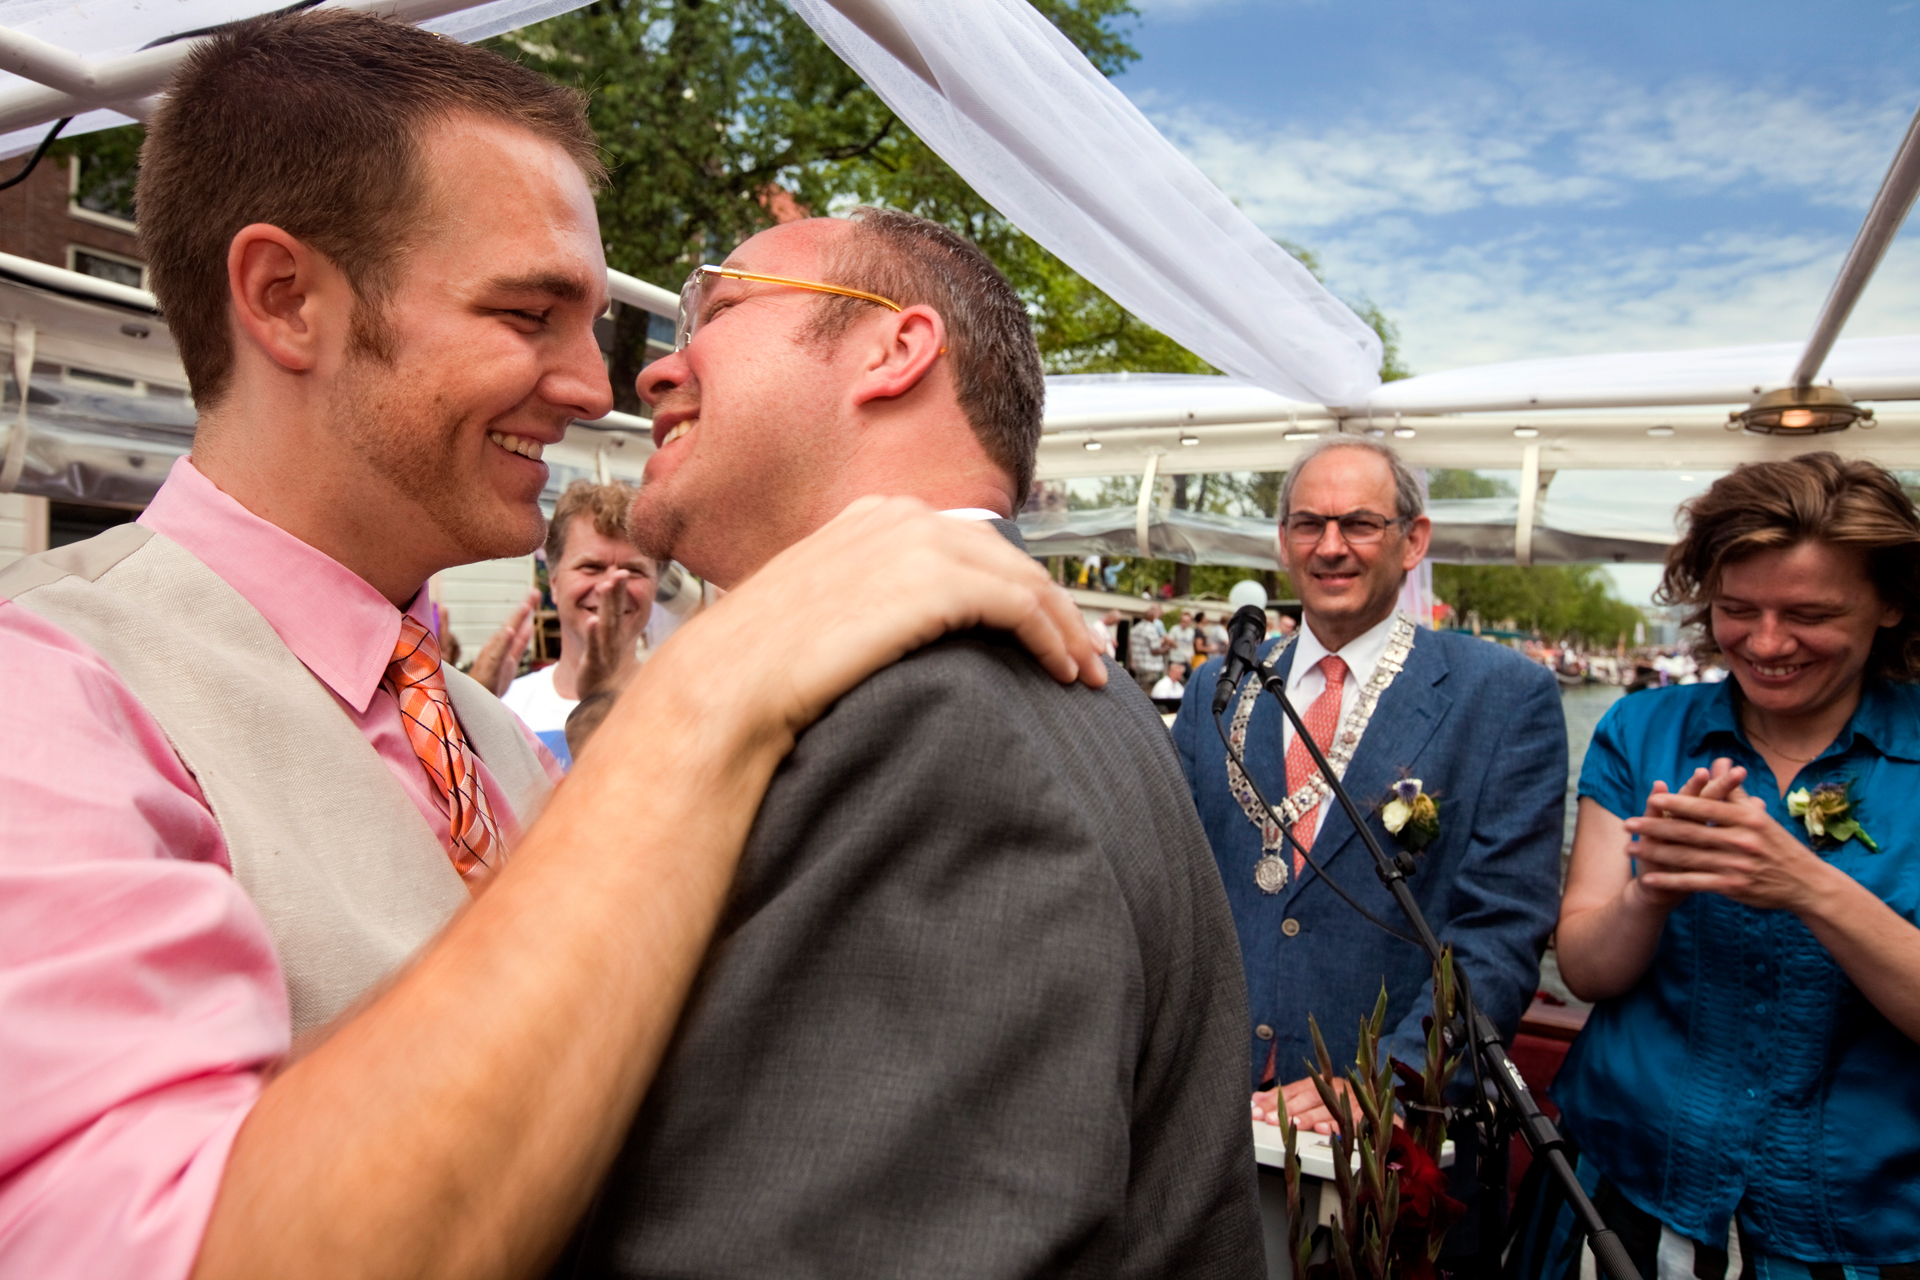 Stephan Hengst and Patrick Decker kiss after exchanging vows during a same-sex marriage ceremony presided over by Amsterdam Mayor Marius Job Cohen.